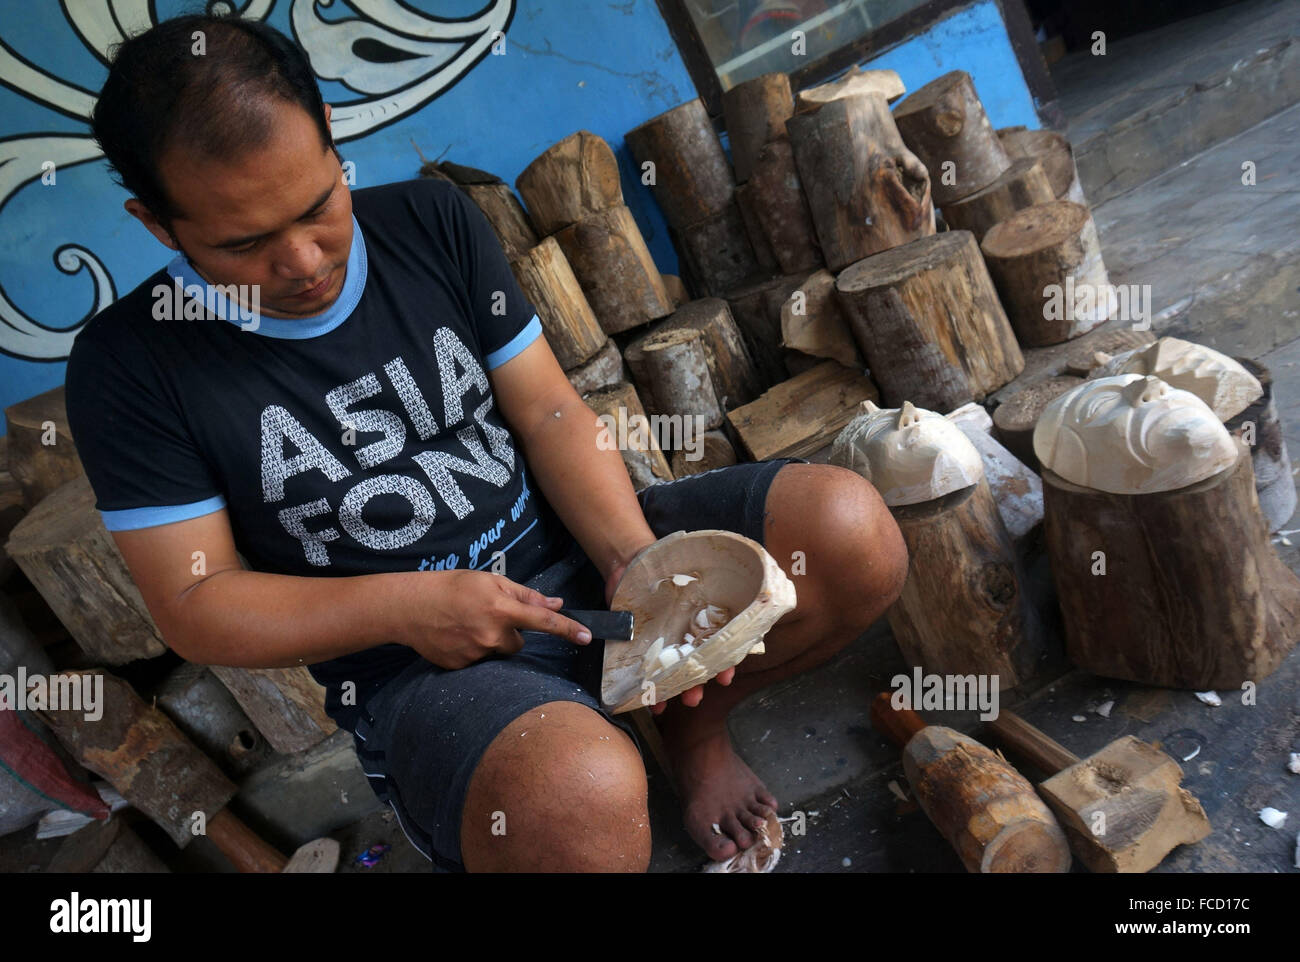 Malang, Indonesia  21st Jan, 2016  Artisans complete the